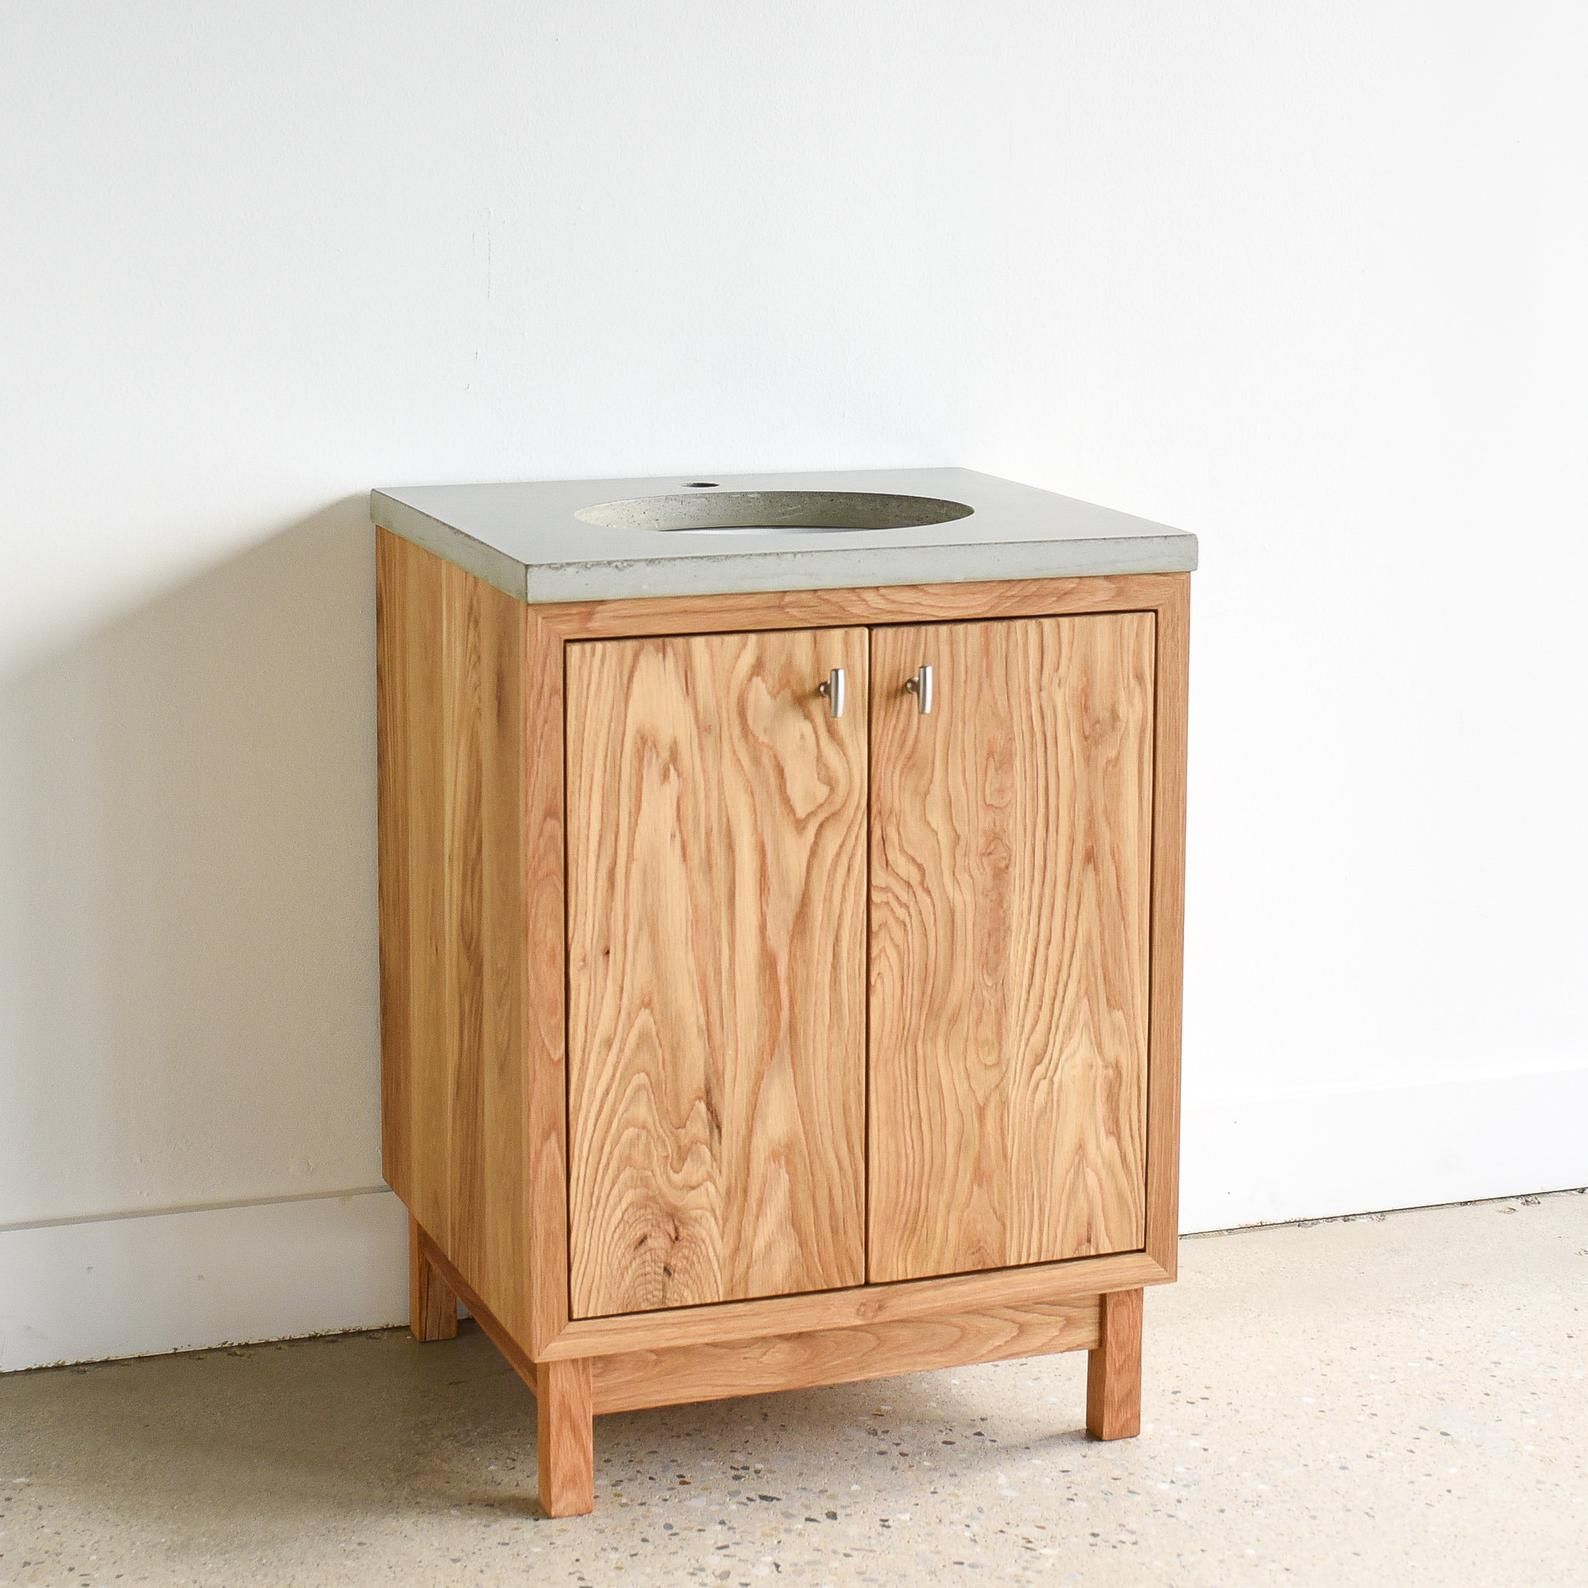 24 Bathroom Vanity Made From Reclaimed Wood Modern Powder Room Vanity Single Sink Console With Images